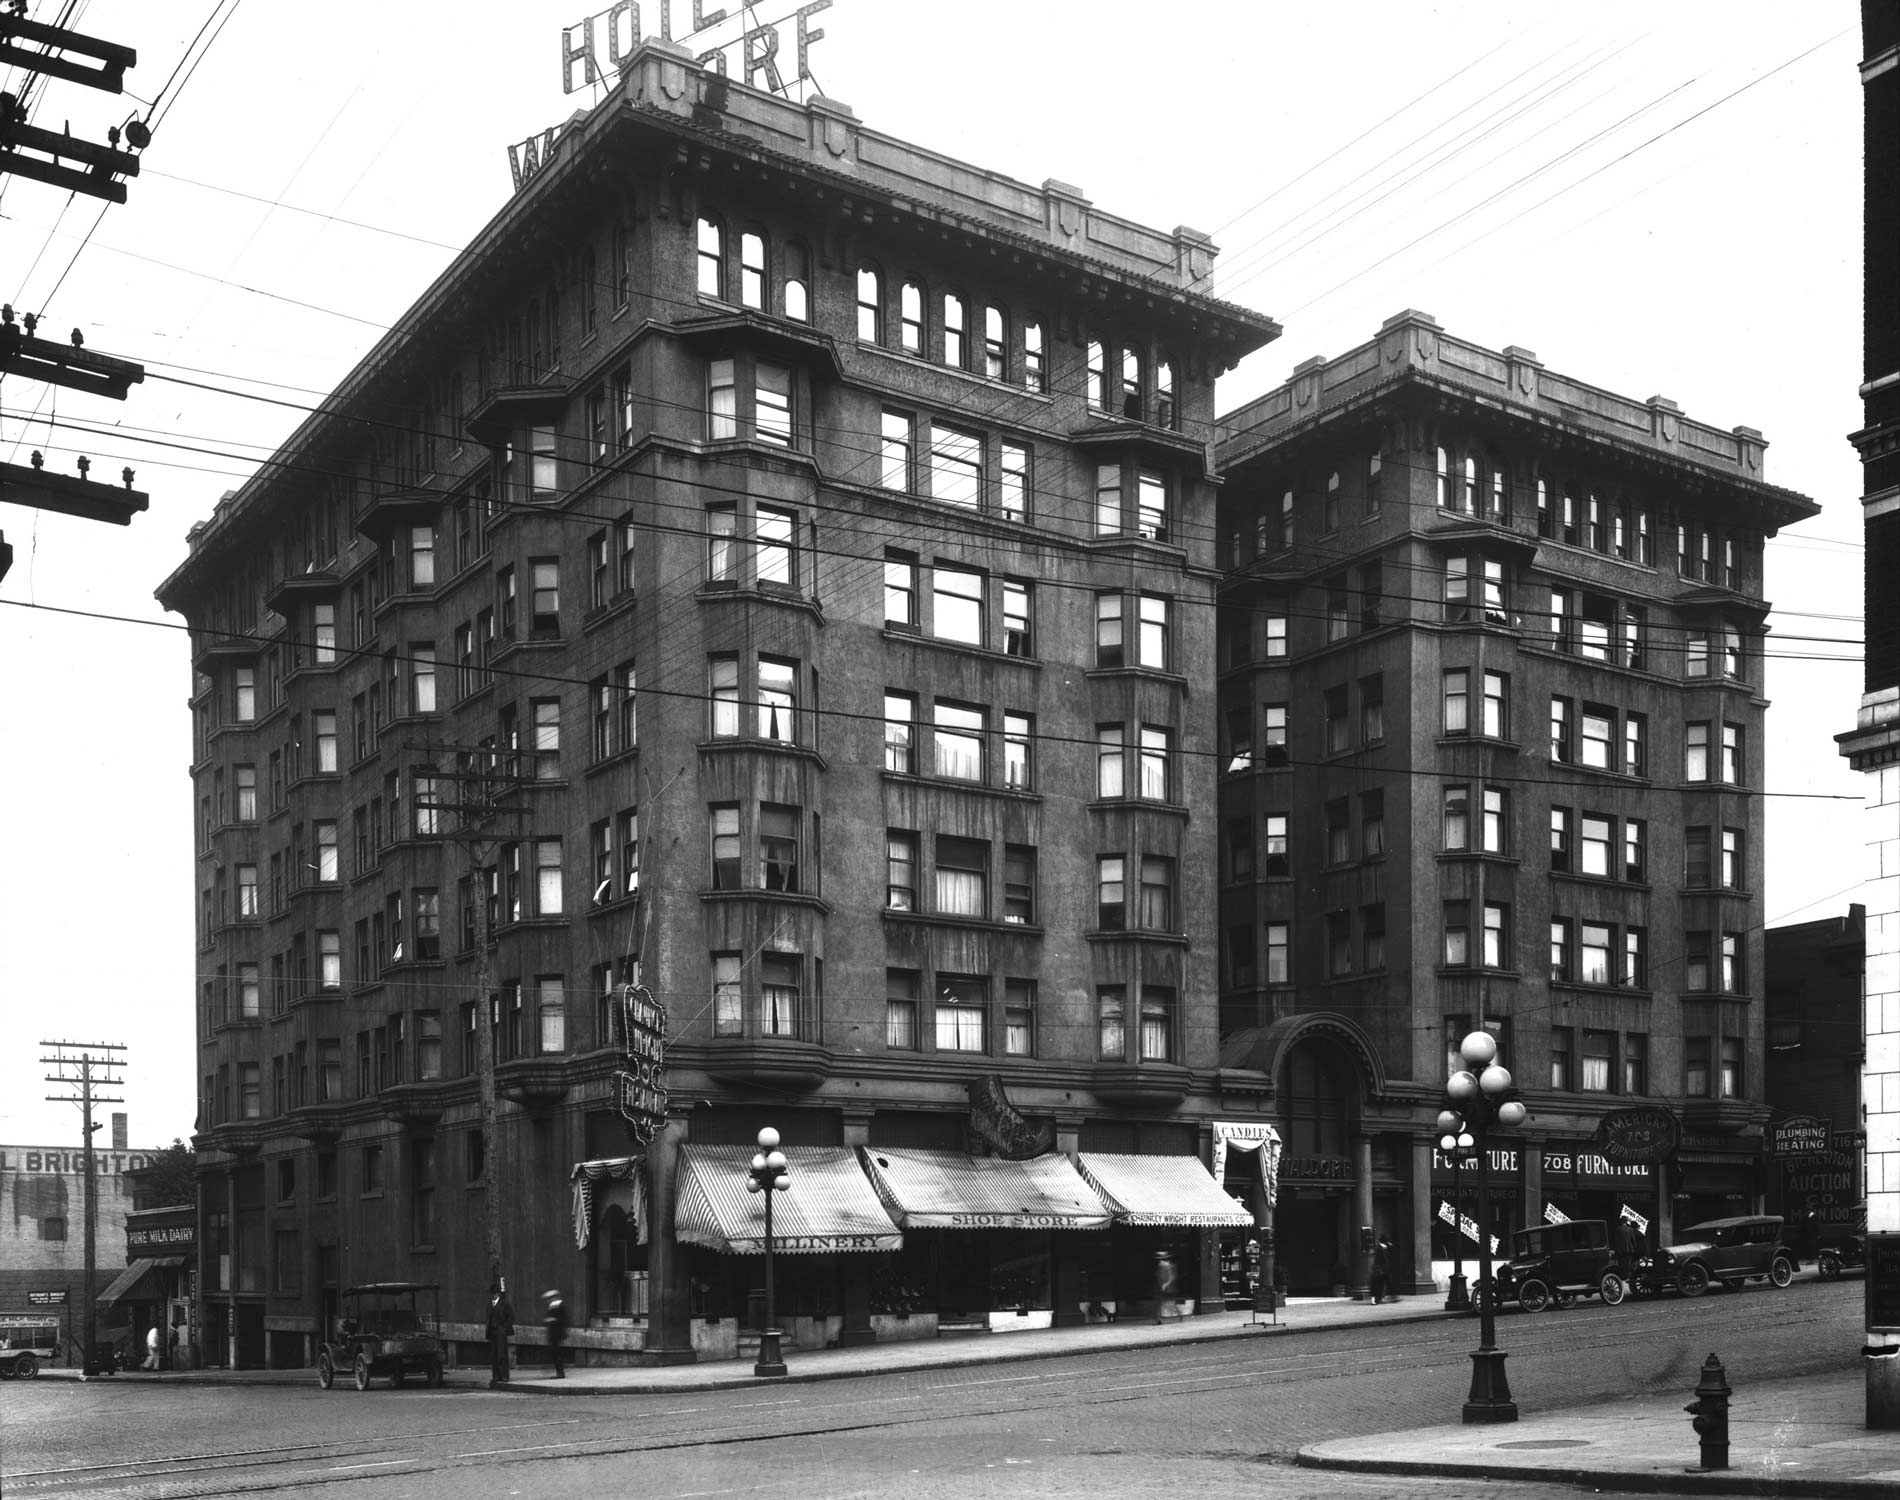 THEN: Encouraged By The Rapid Growth Of Seattleu0027s Business And Retail  Districts To The North, The Waldorf, Then The Biggest Apartment House In  Town, ...